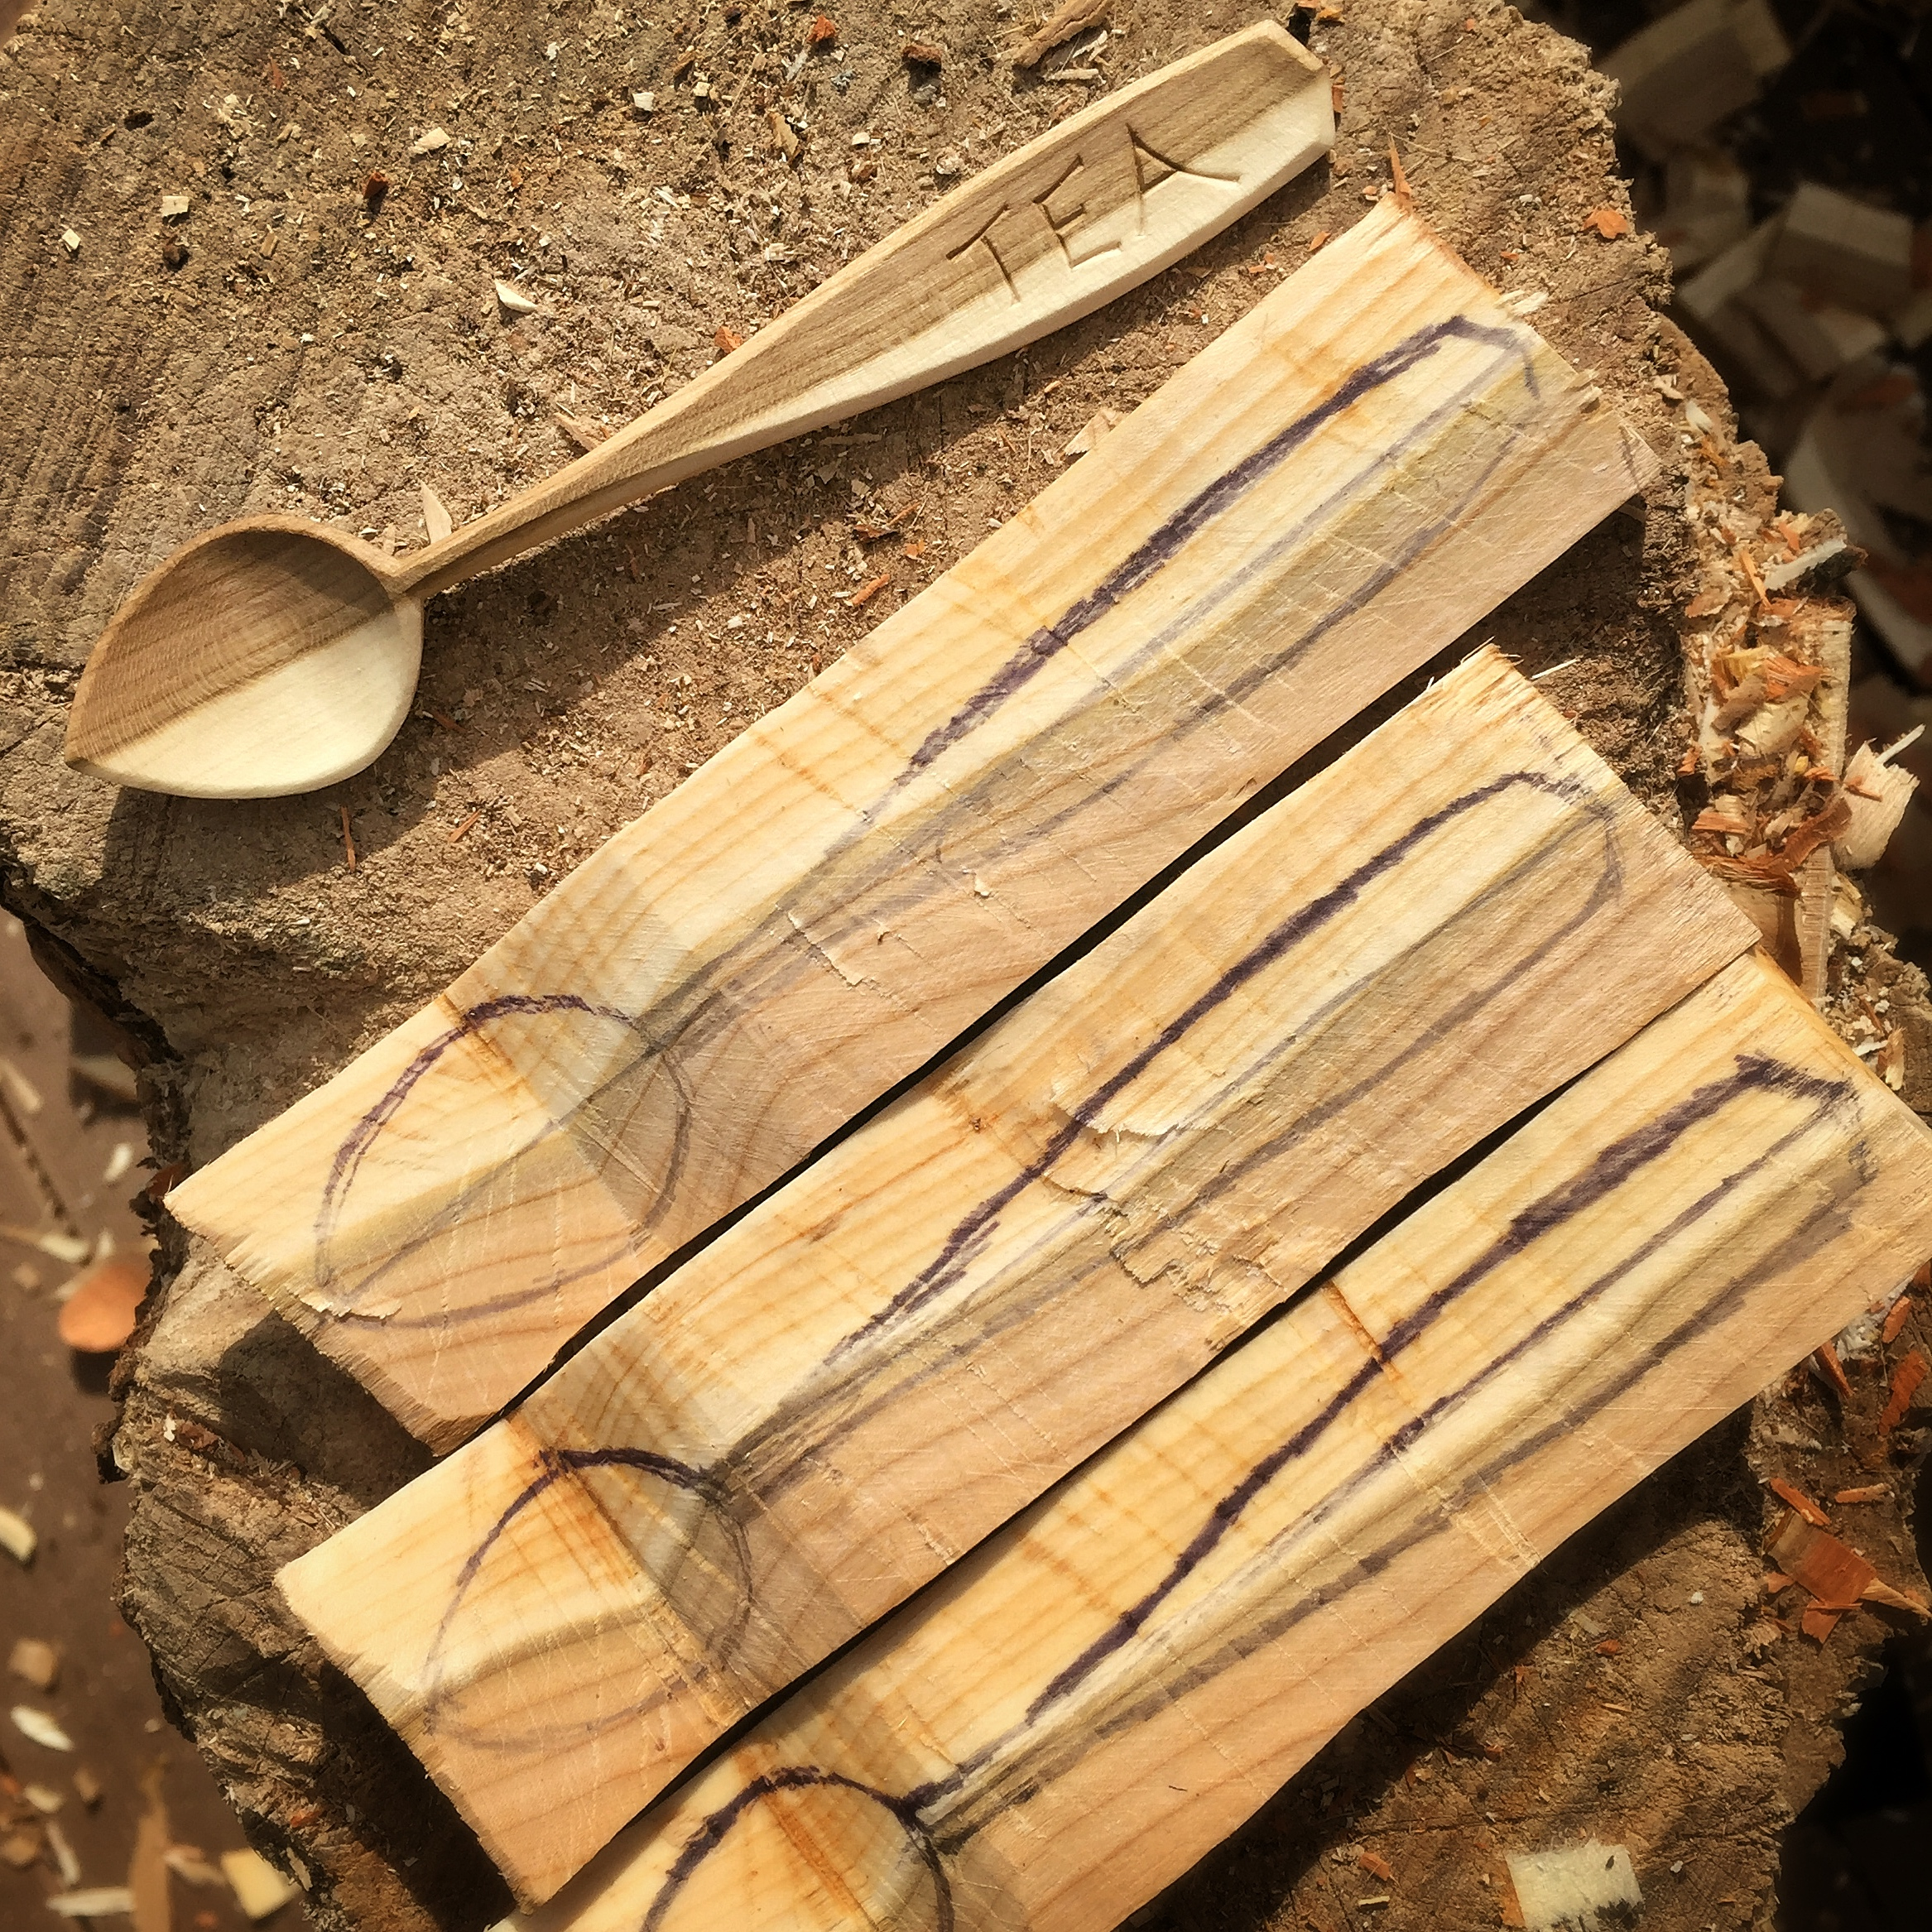 Tea Spoons ready to emerge from cherry wood.